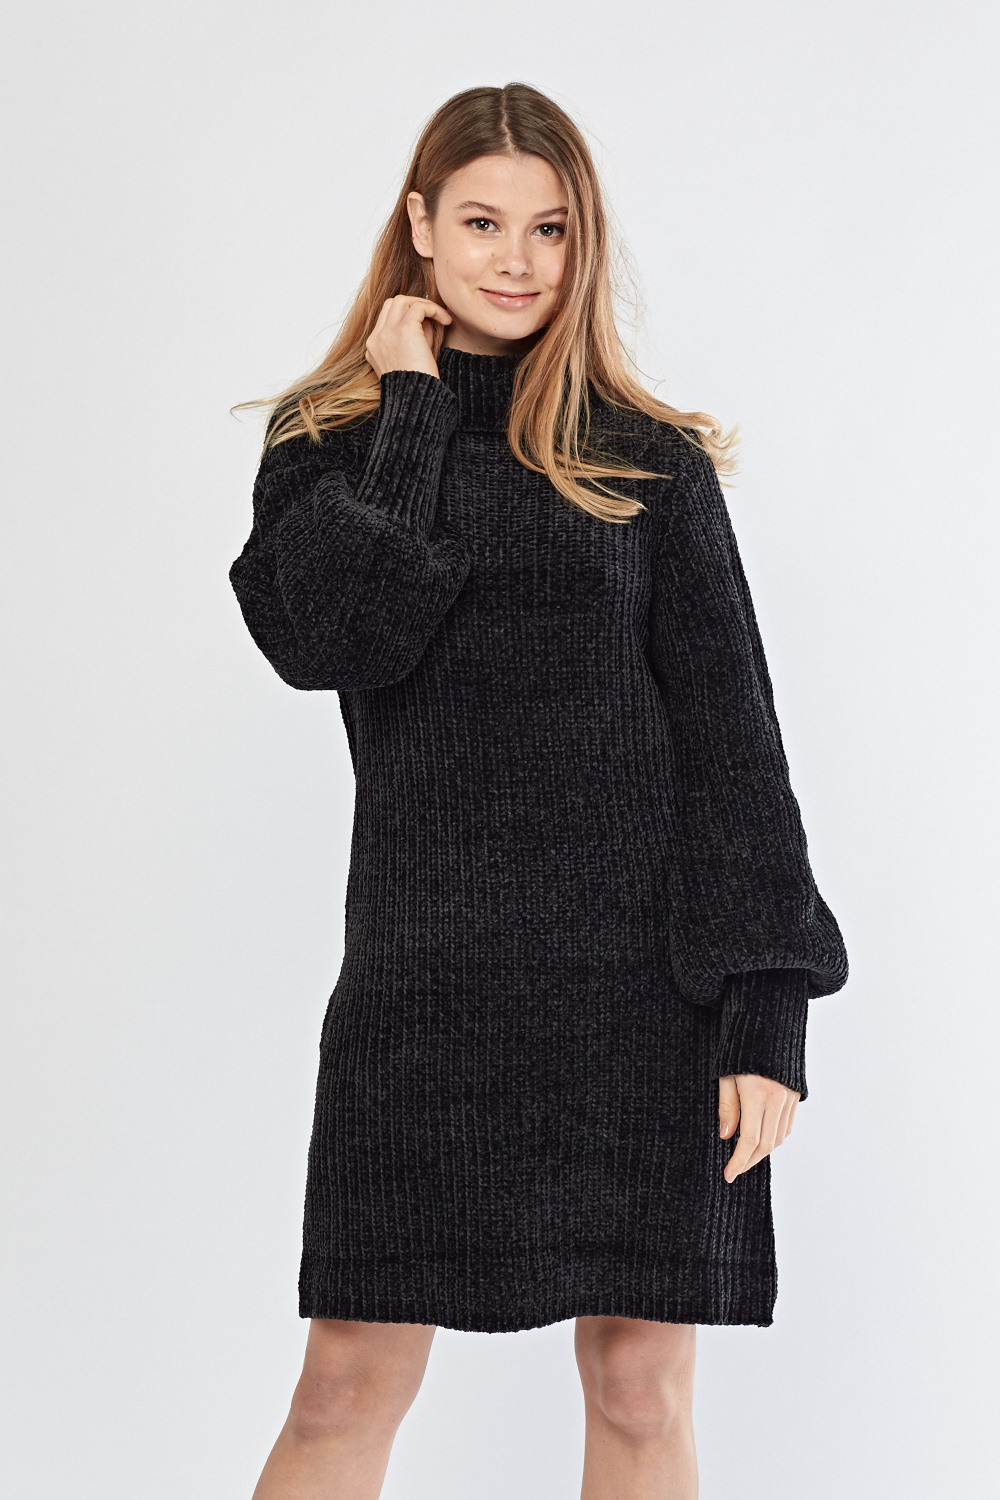 3a72503564 Roll Neck Chenille Knit Jumper Dress - Just £5